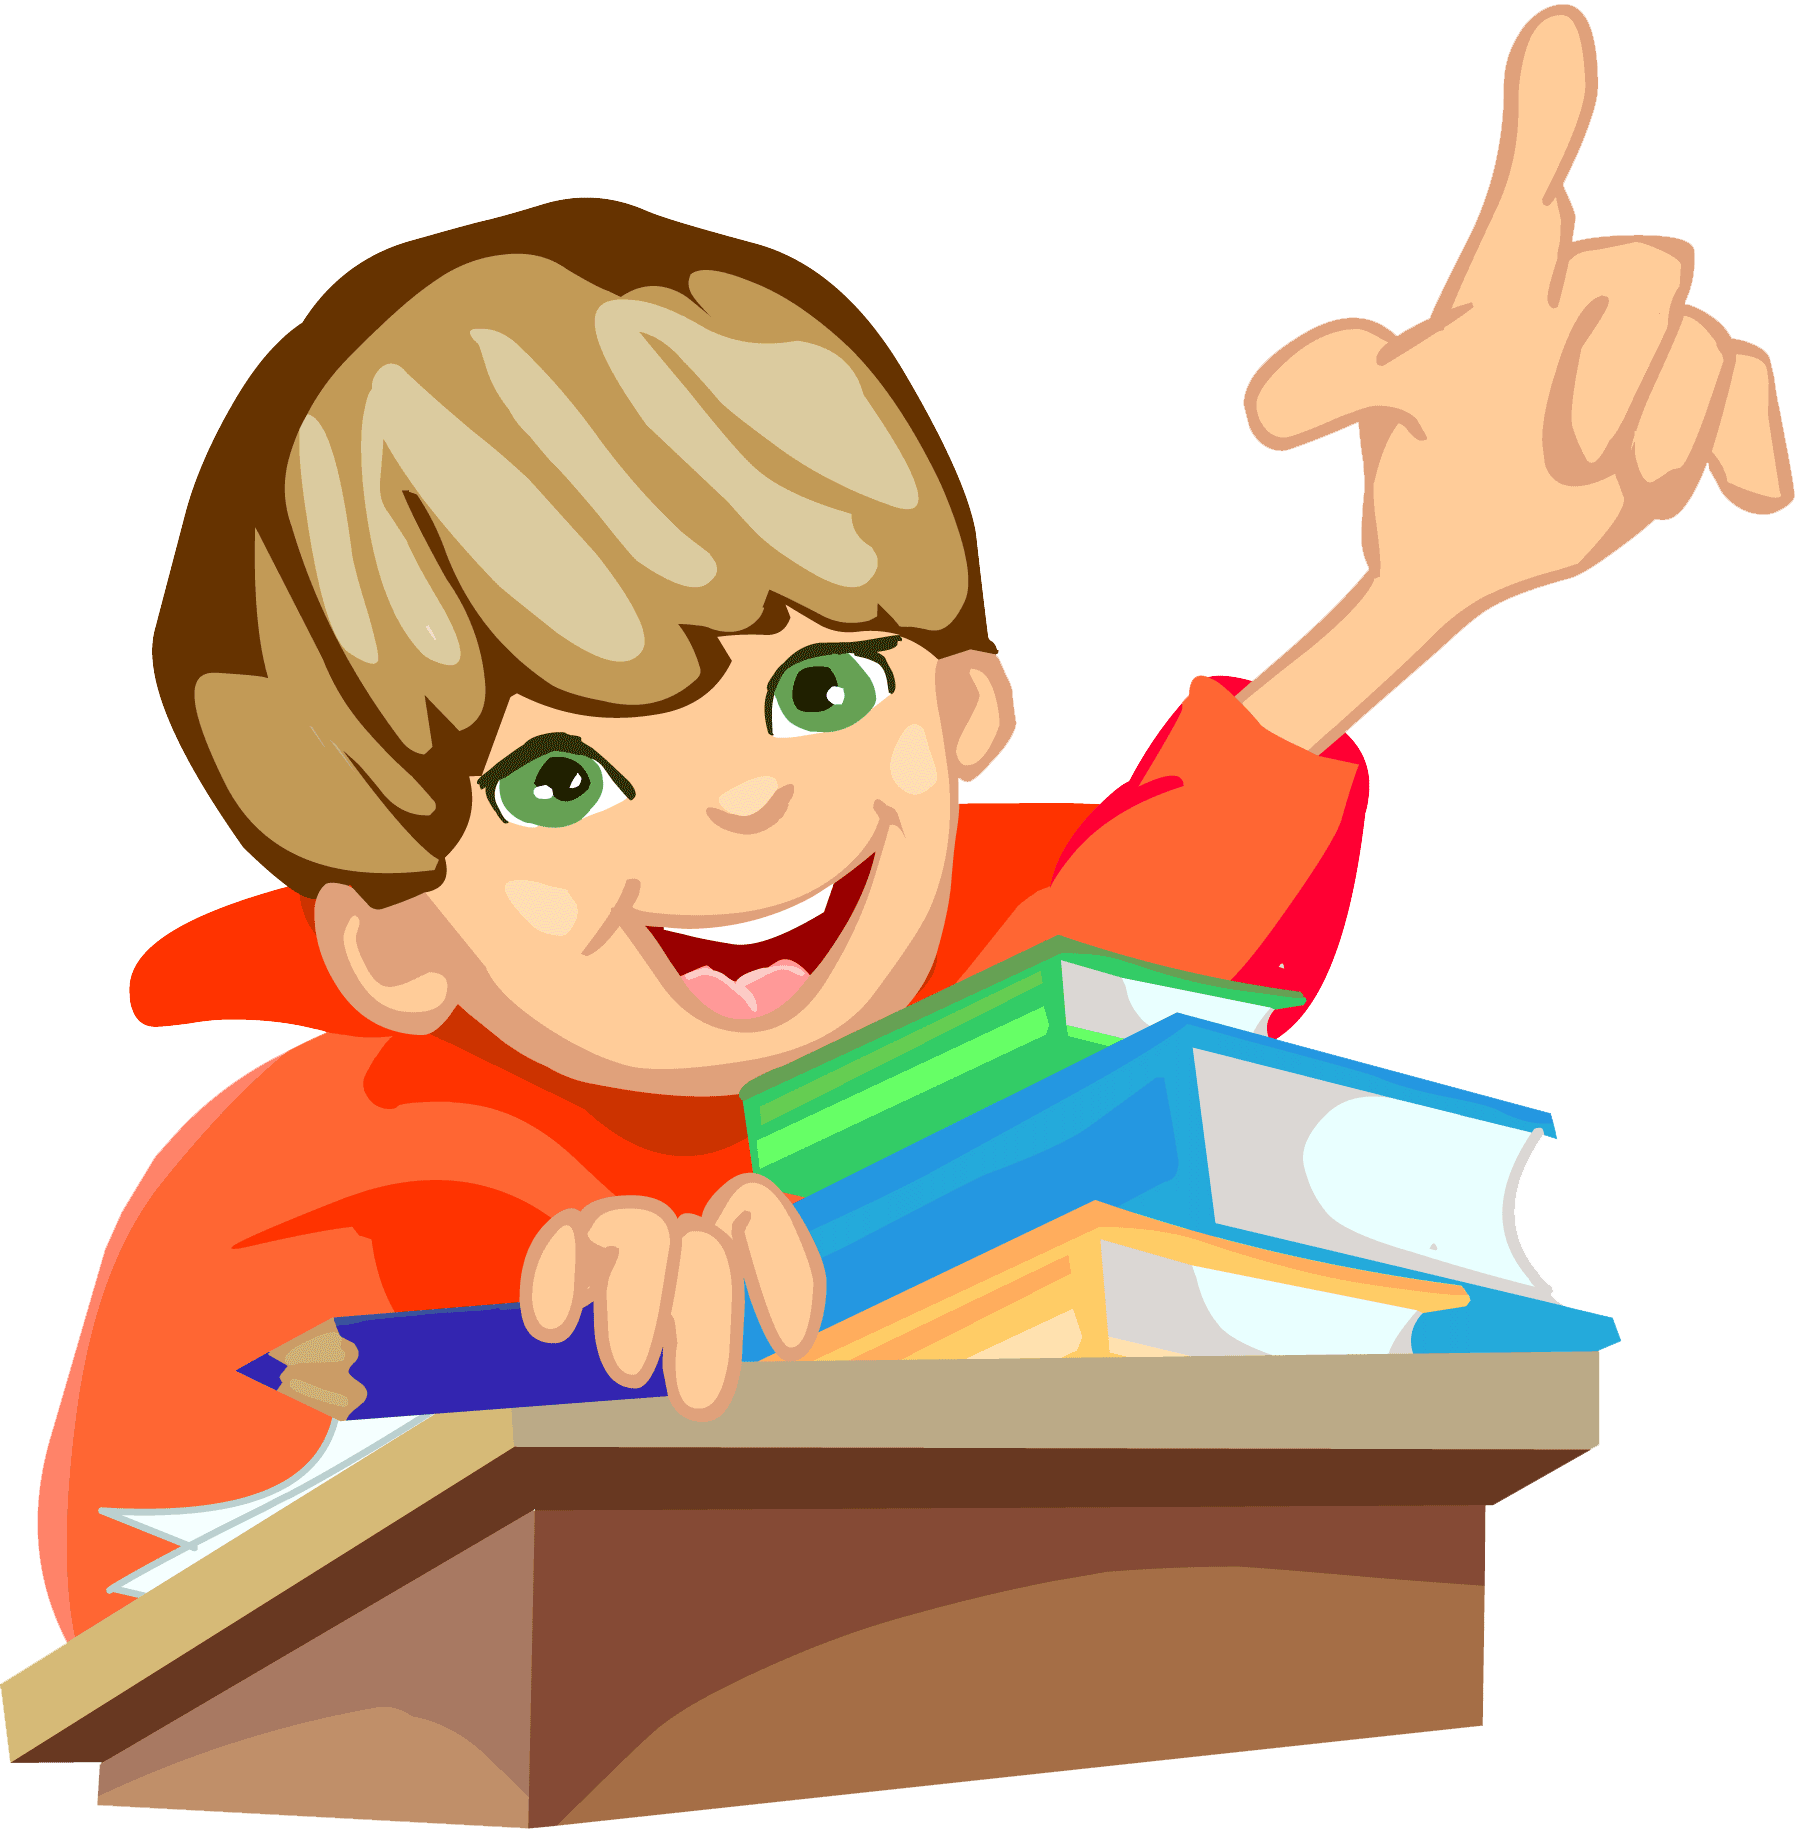 School tuition clipart image free download A top 'A'Level Economics tuition centre in Singapore, here students ... image free download